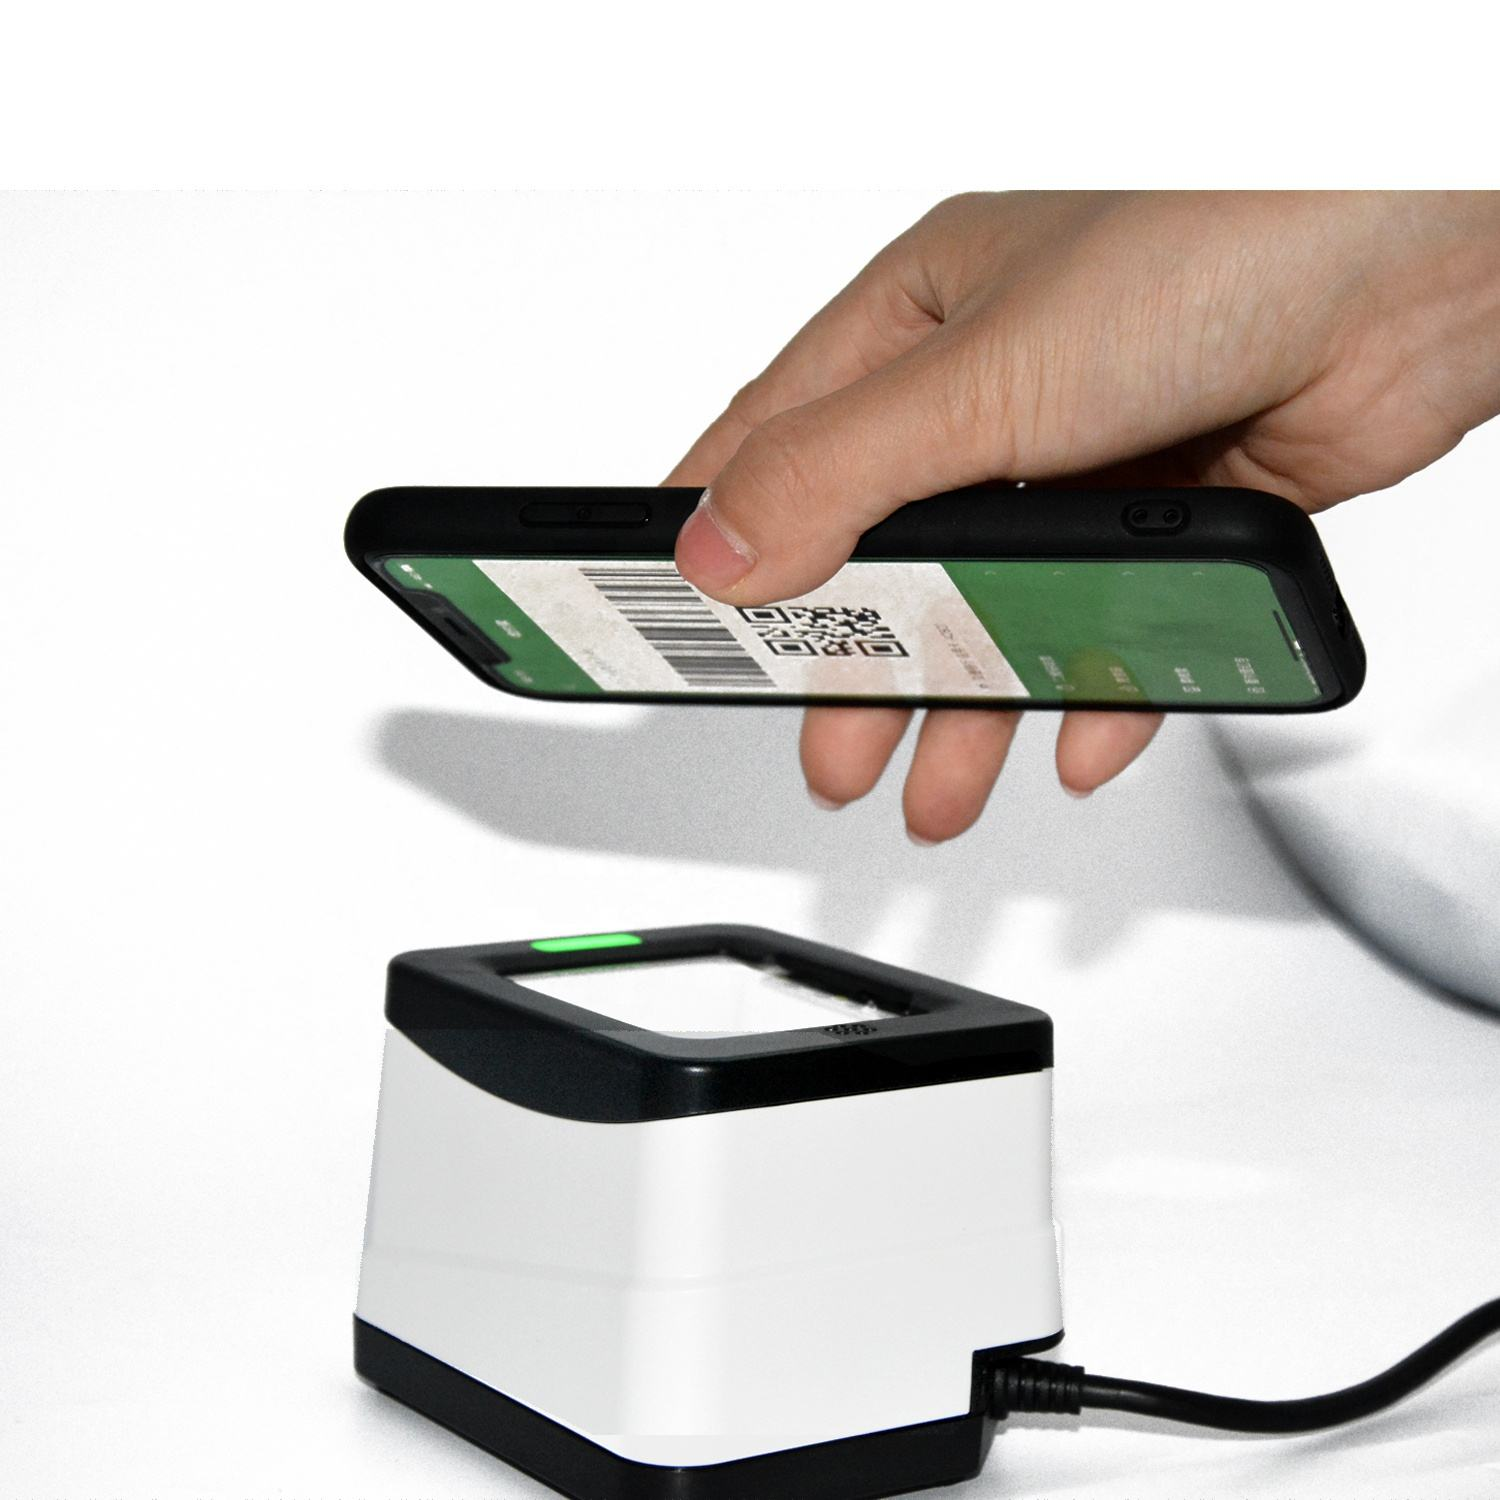 USB / RS232 Mobile Payment Box 2D QR Reader Barcode Scanner HS-2001B